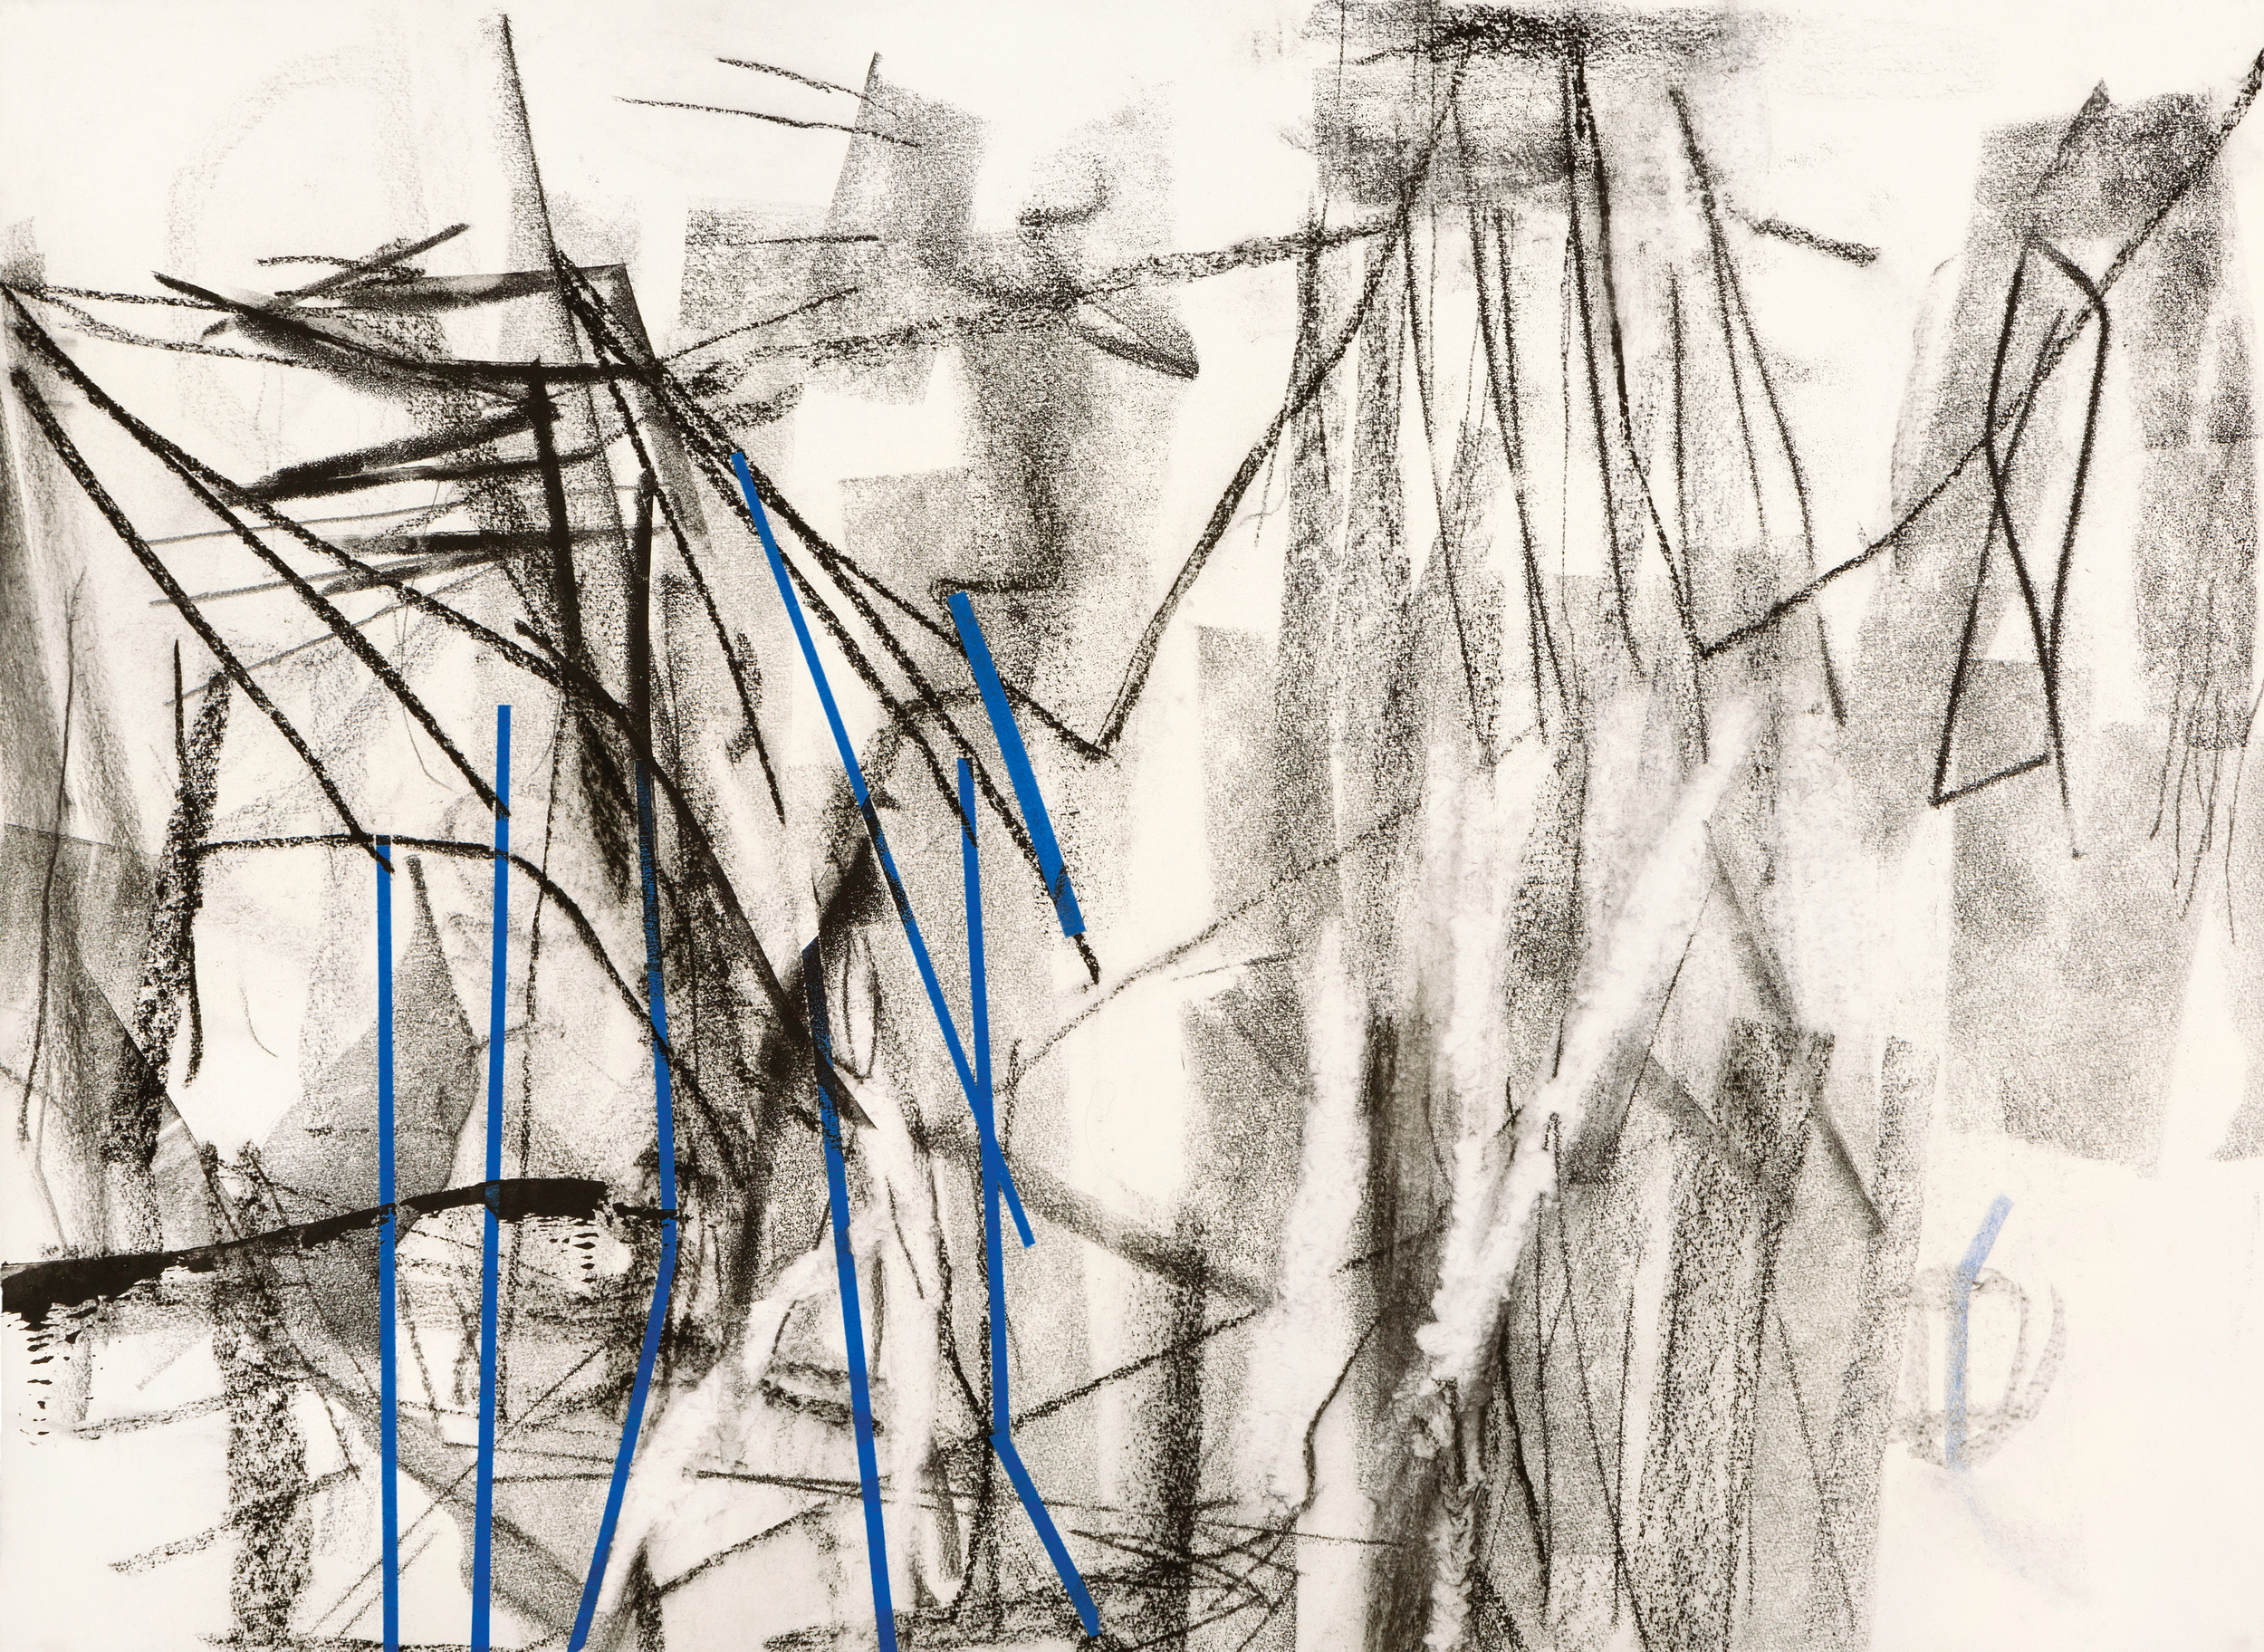 Untitled (rd.13.8), 2013 block prining ink, charcoal, blue tape, colored pencil on paper 22 1/2 x 31 inches